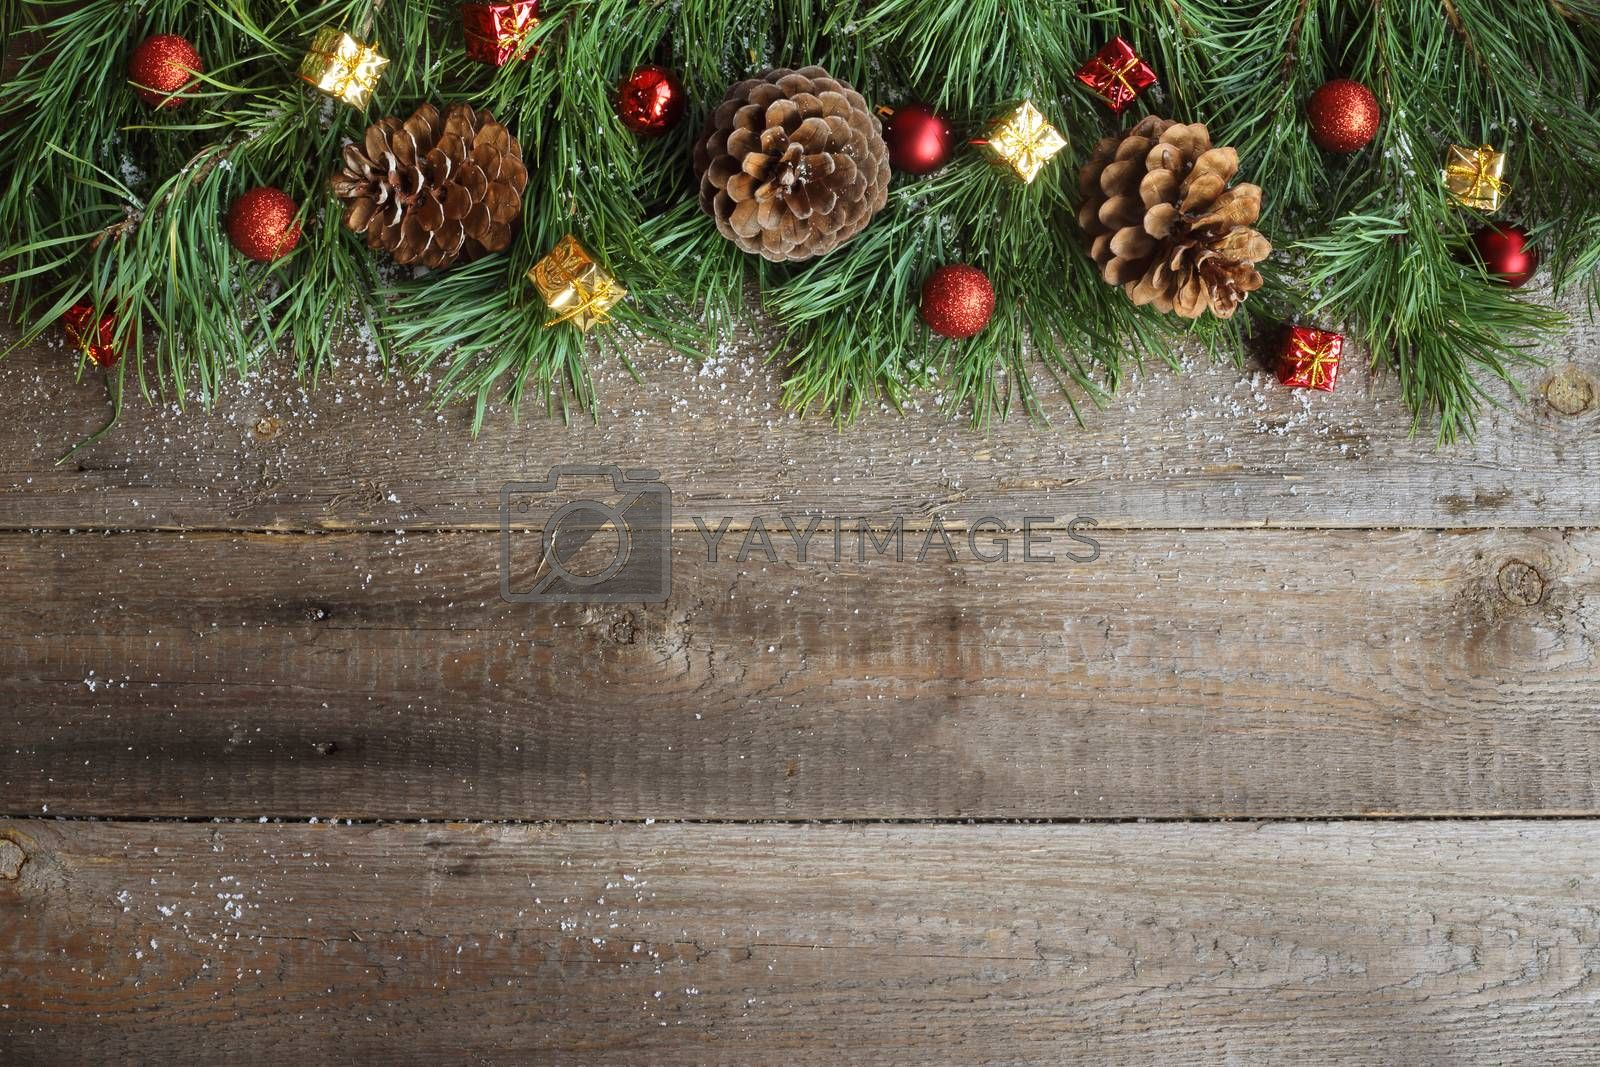 Christmas card on wooden background by Liubov Mikhaylova